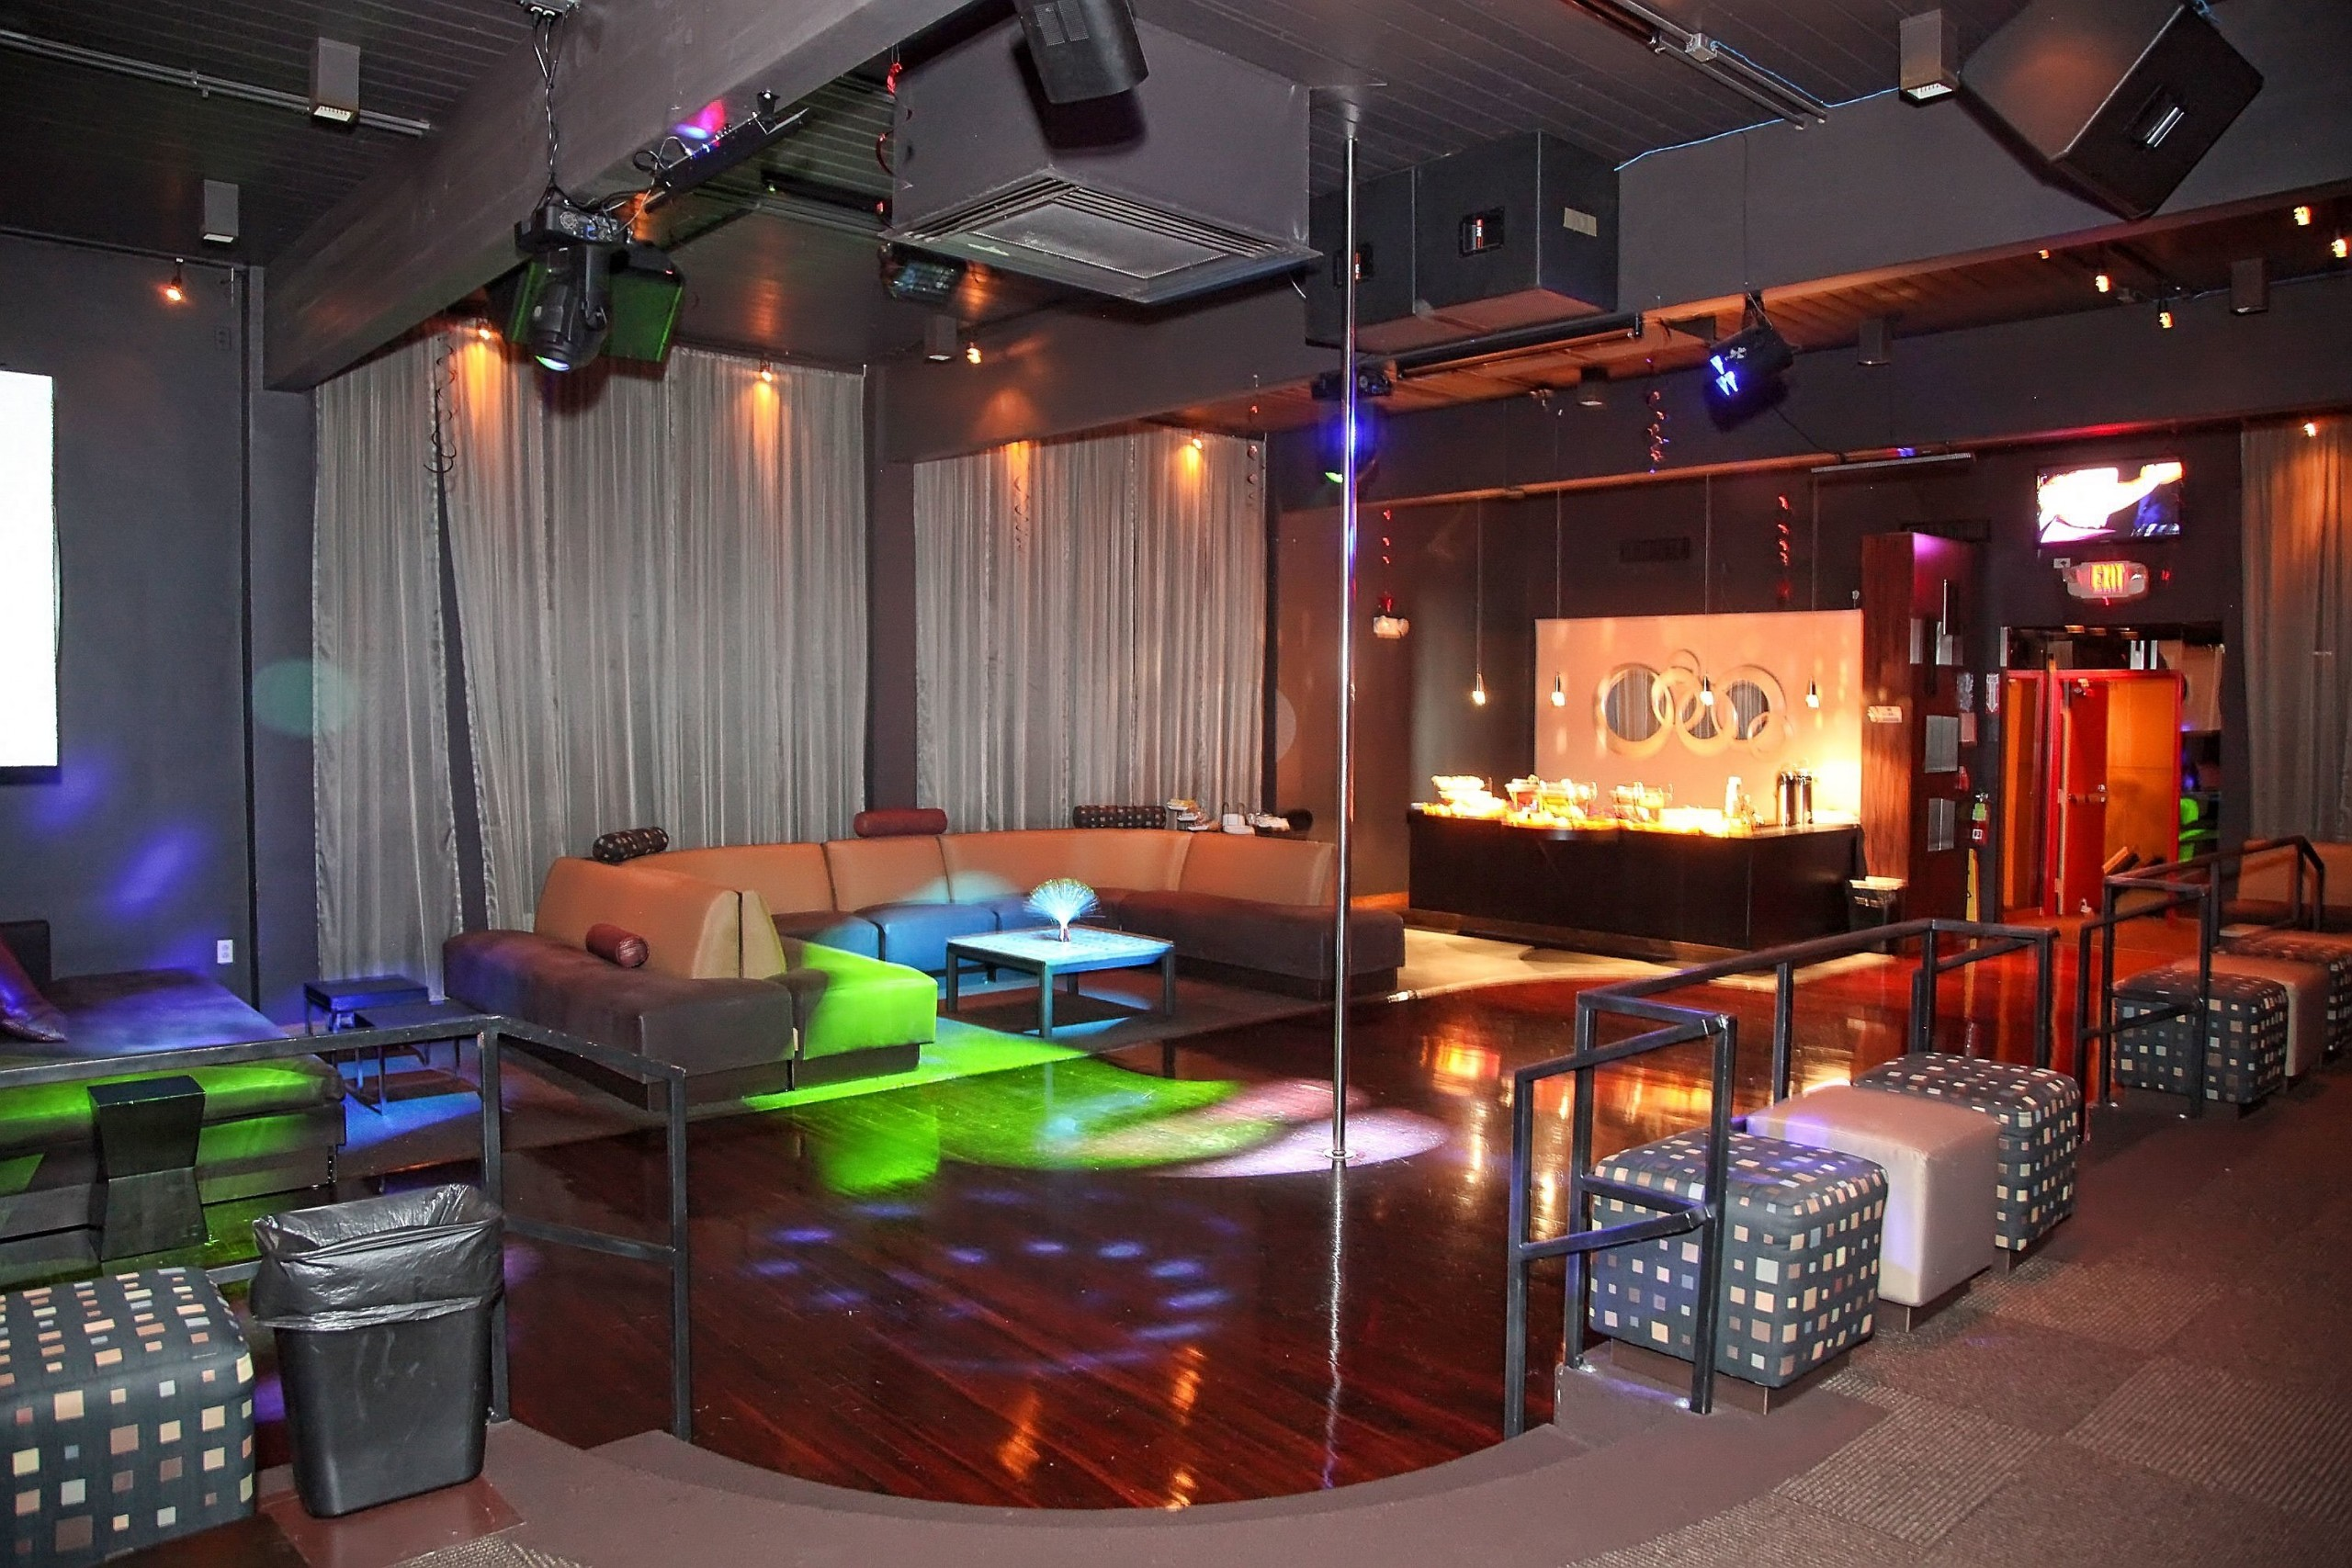 Swingers Club In New Jersey has the Hottest Parties